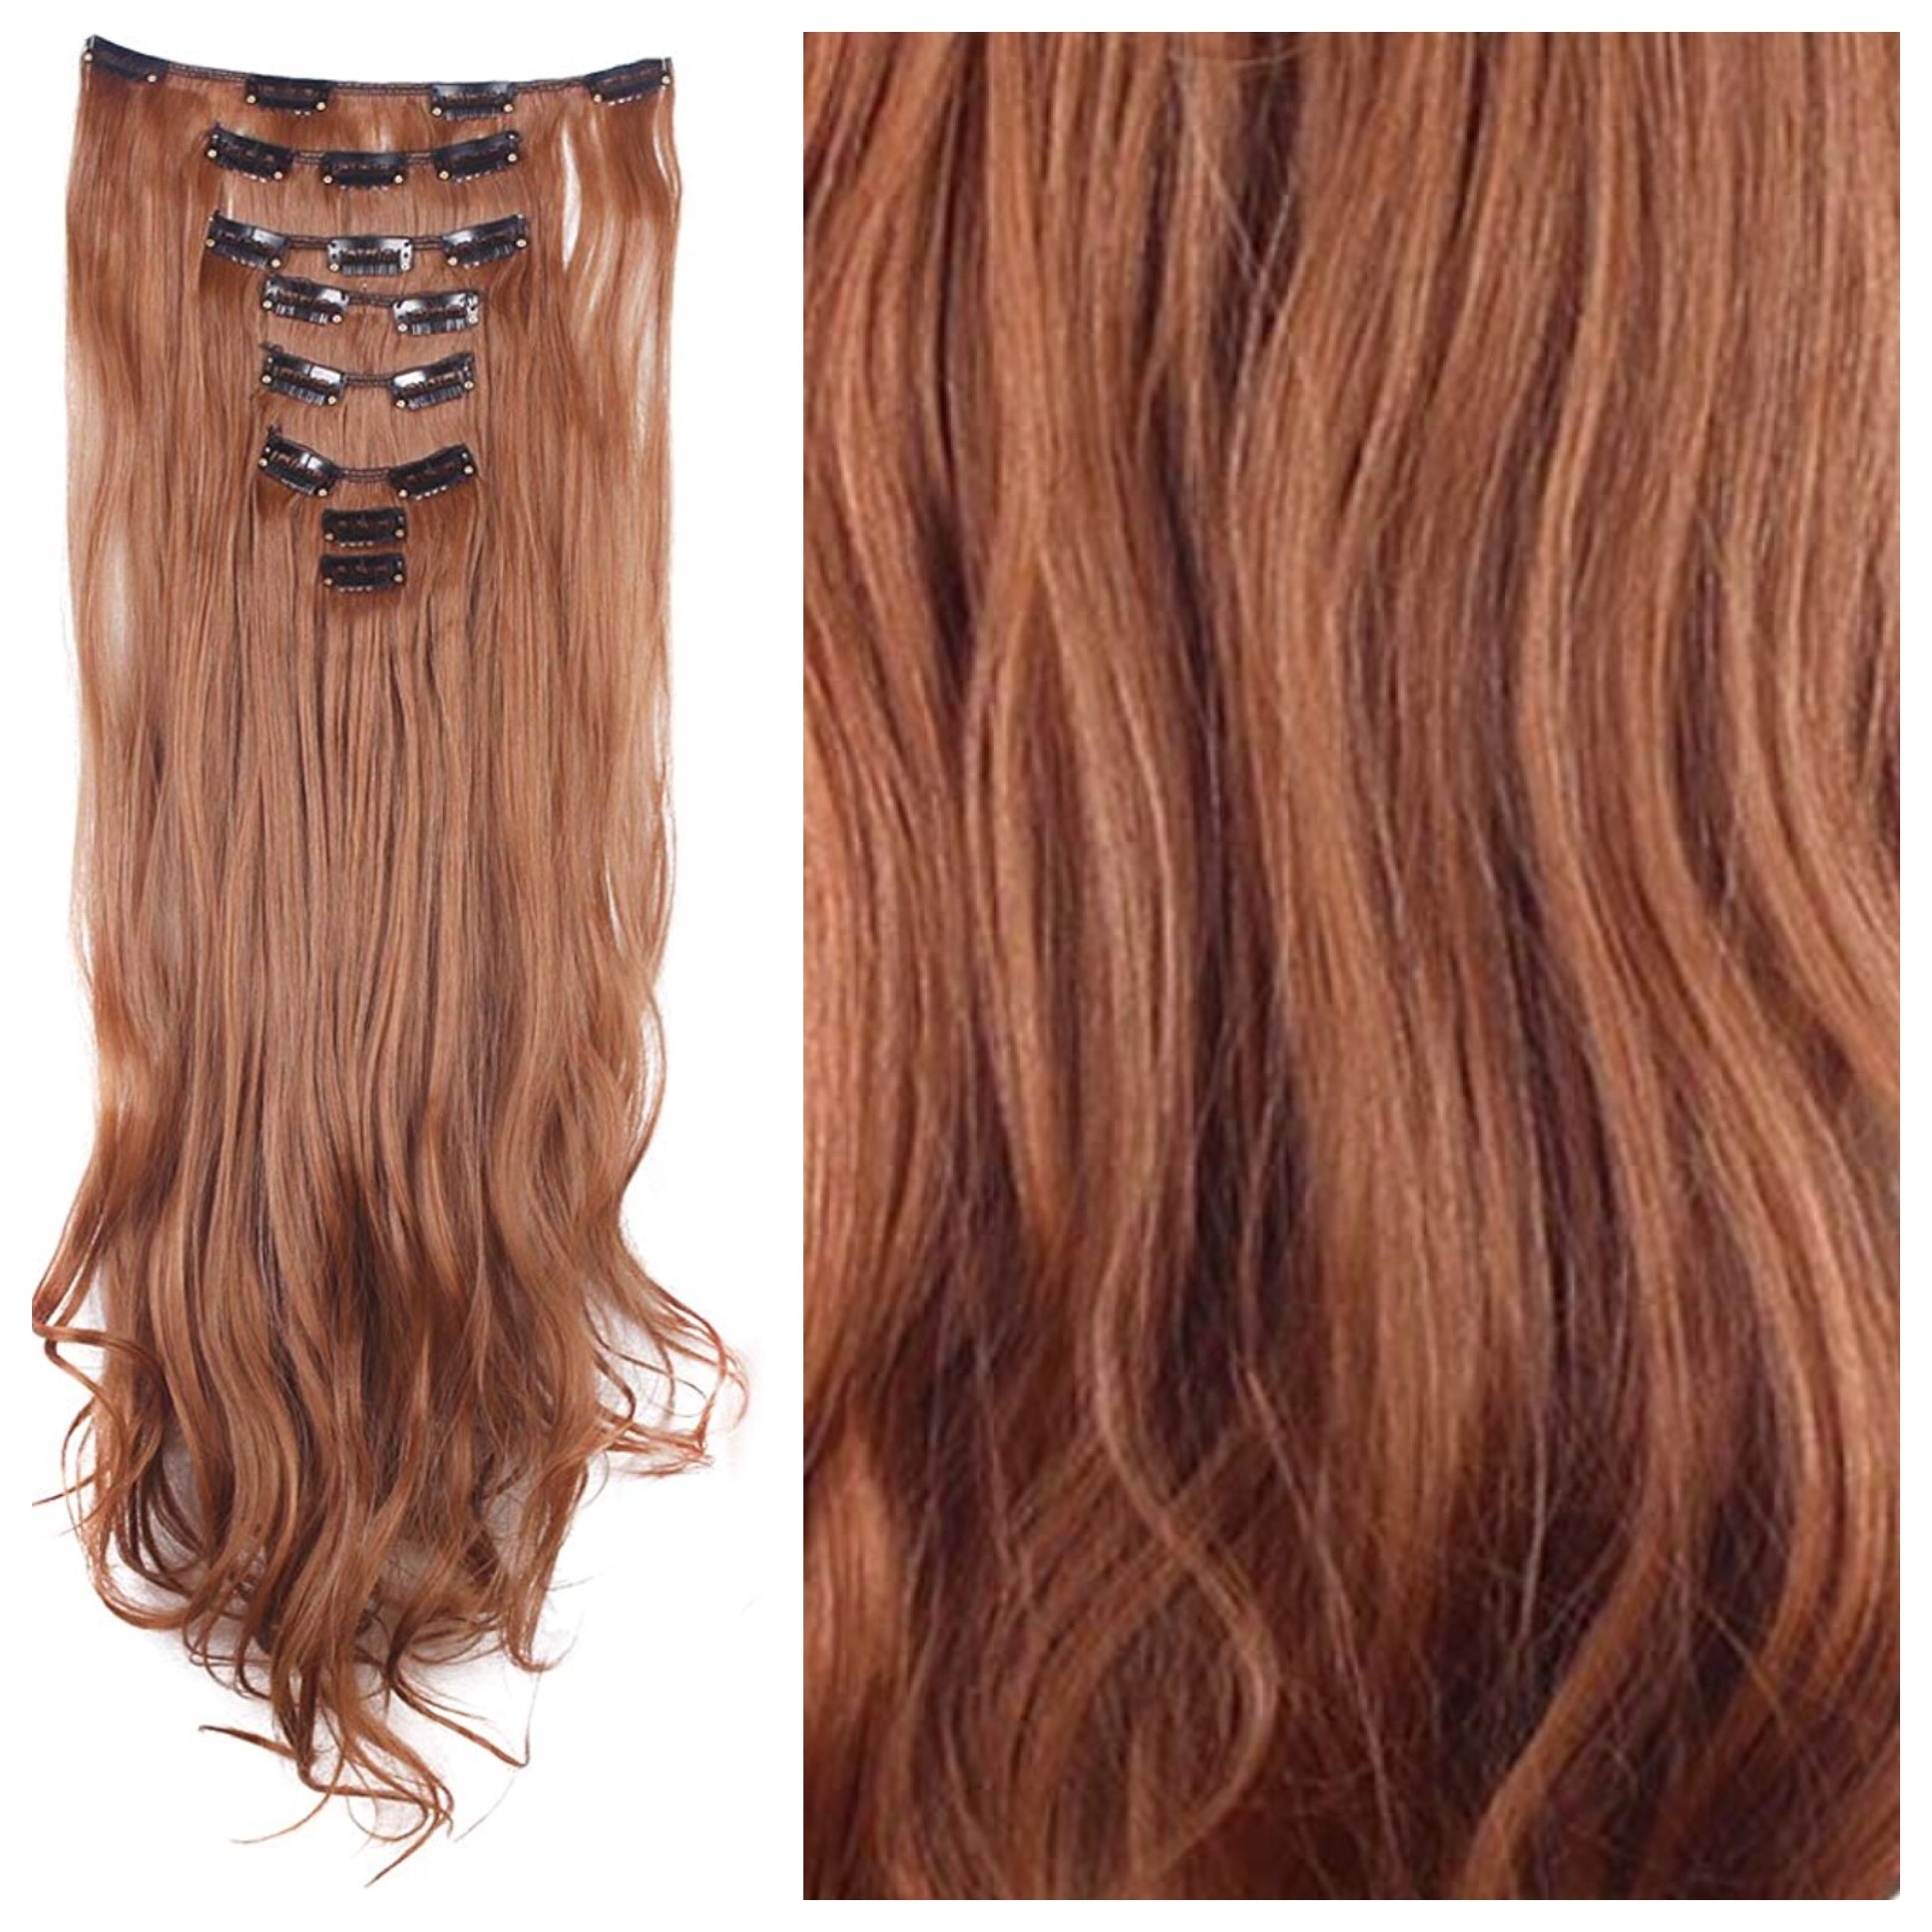 Light Auburn Hair Extensions 24 Clip In Hair Weave 185g Curly Wavy